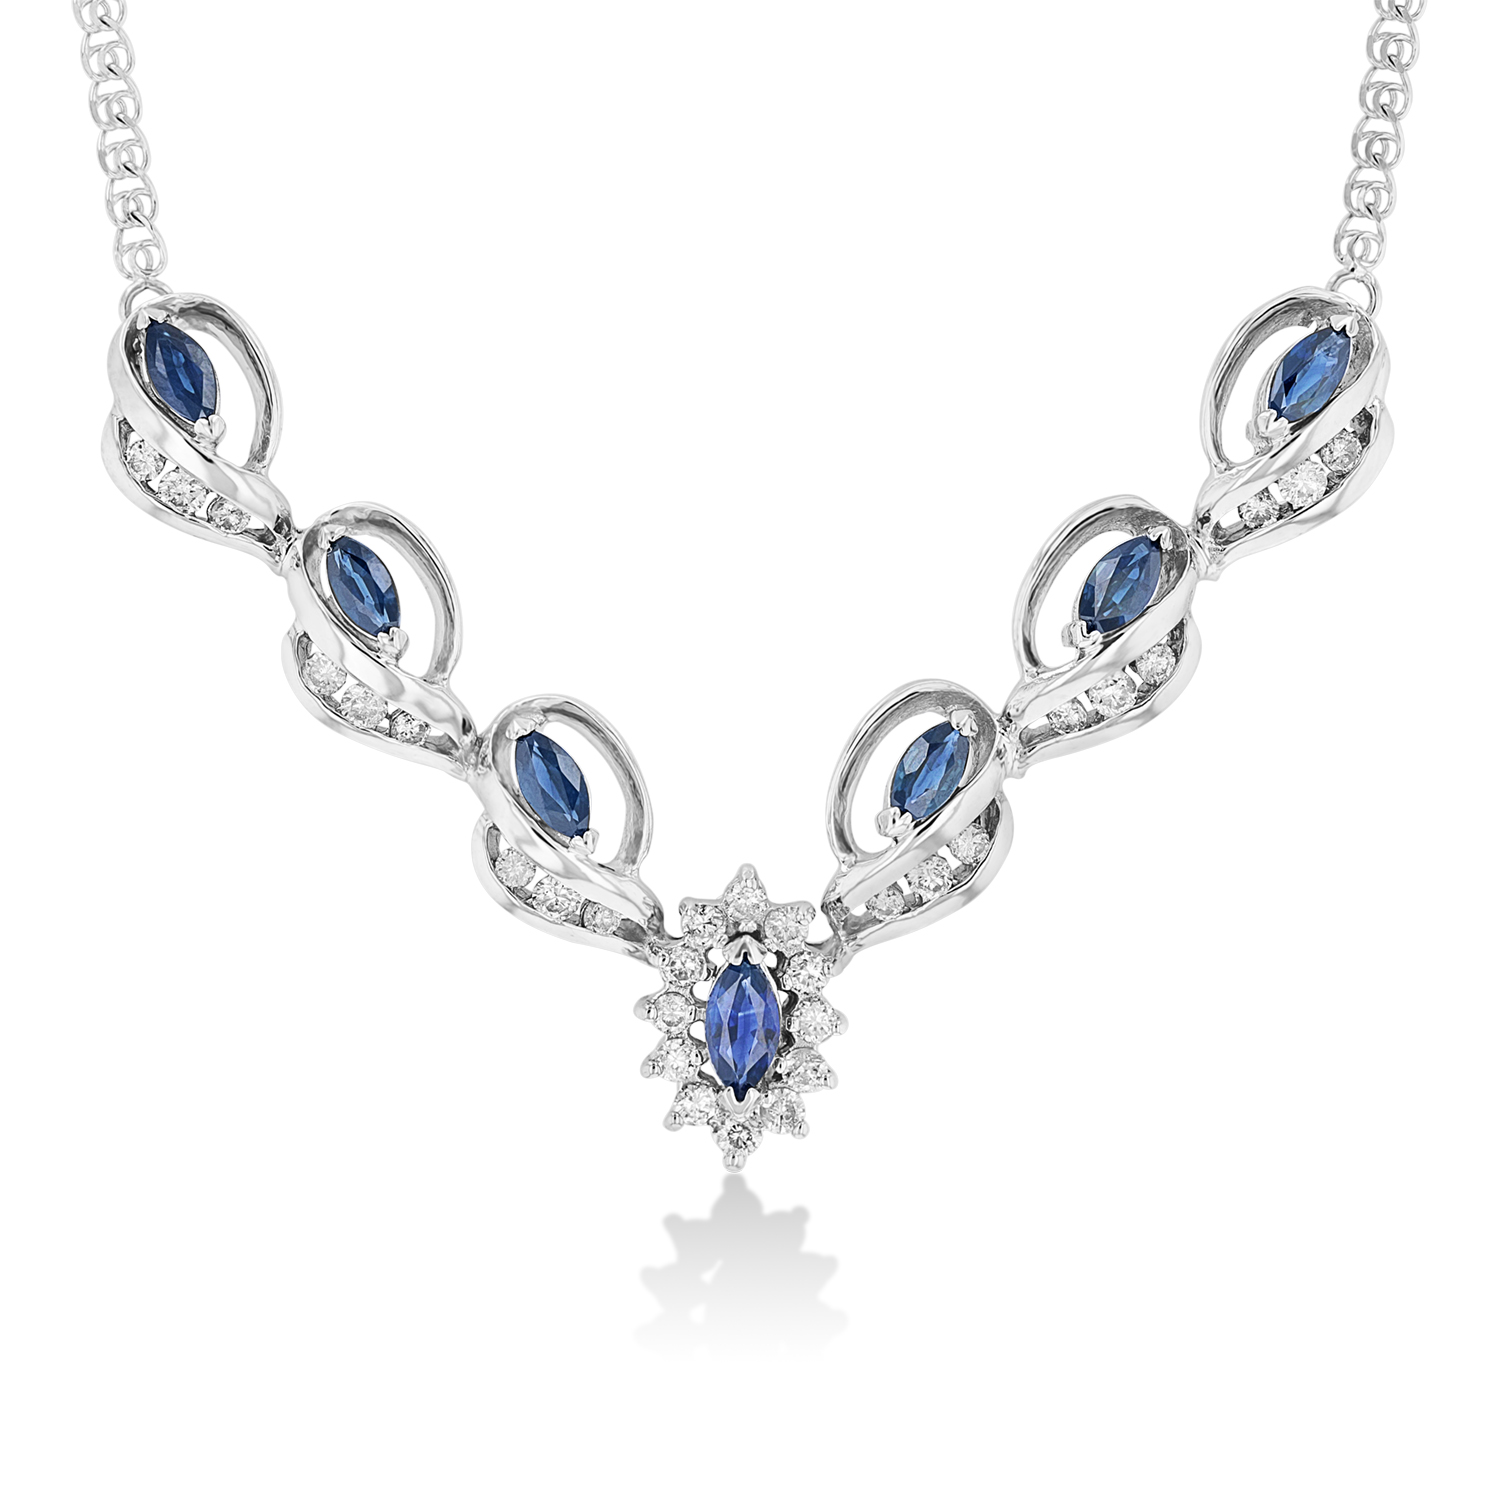 View 0.65ctw Diamond and Sapphire Necklace in 14k WG